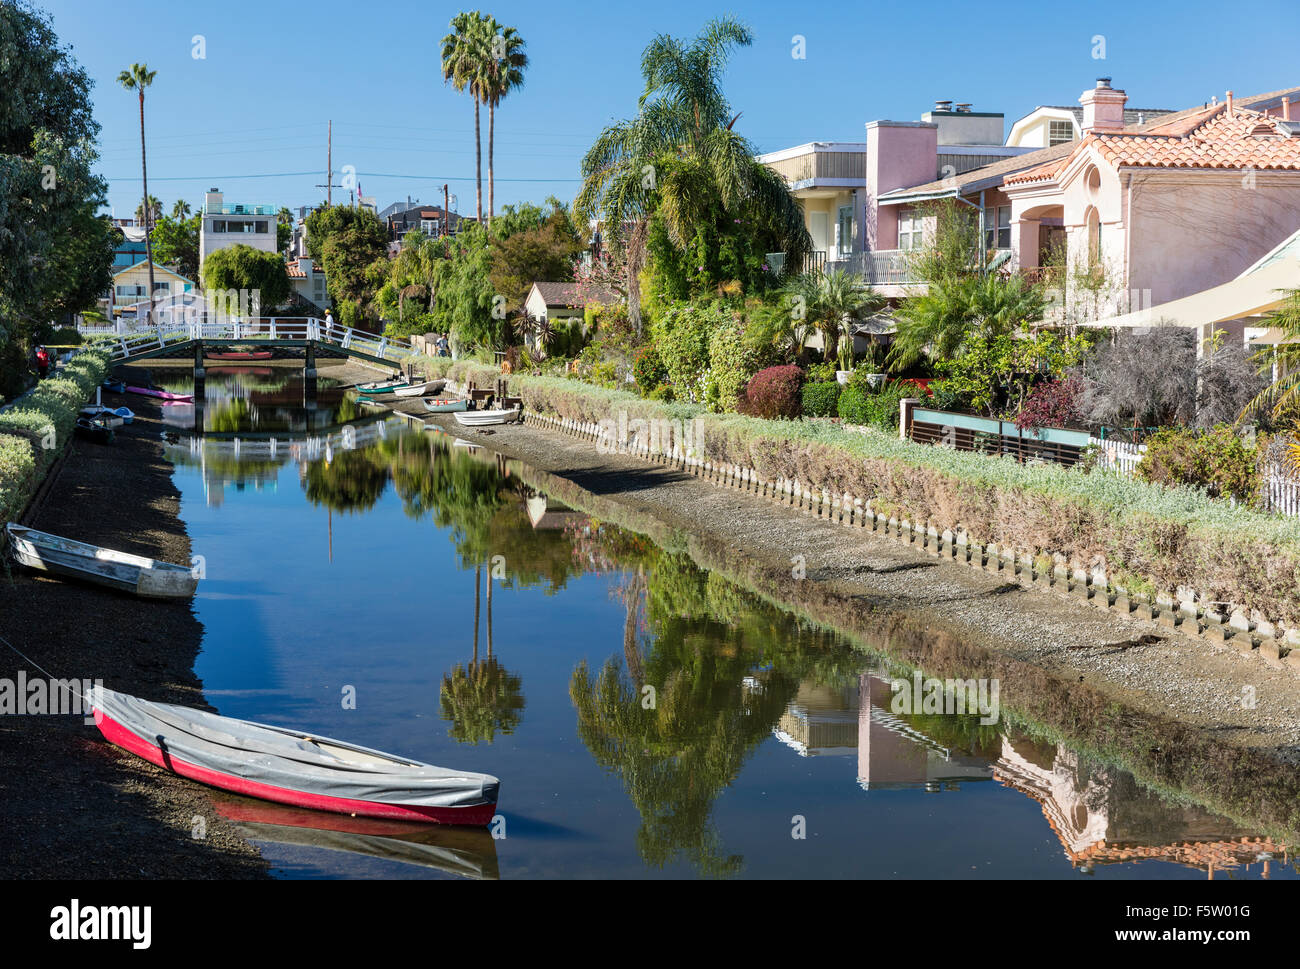 Sherman Canal, one of the famous canals of Venice (Los Angeles) California, USA - Stock Image